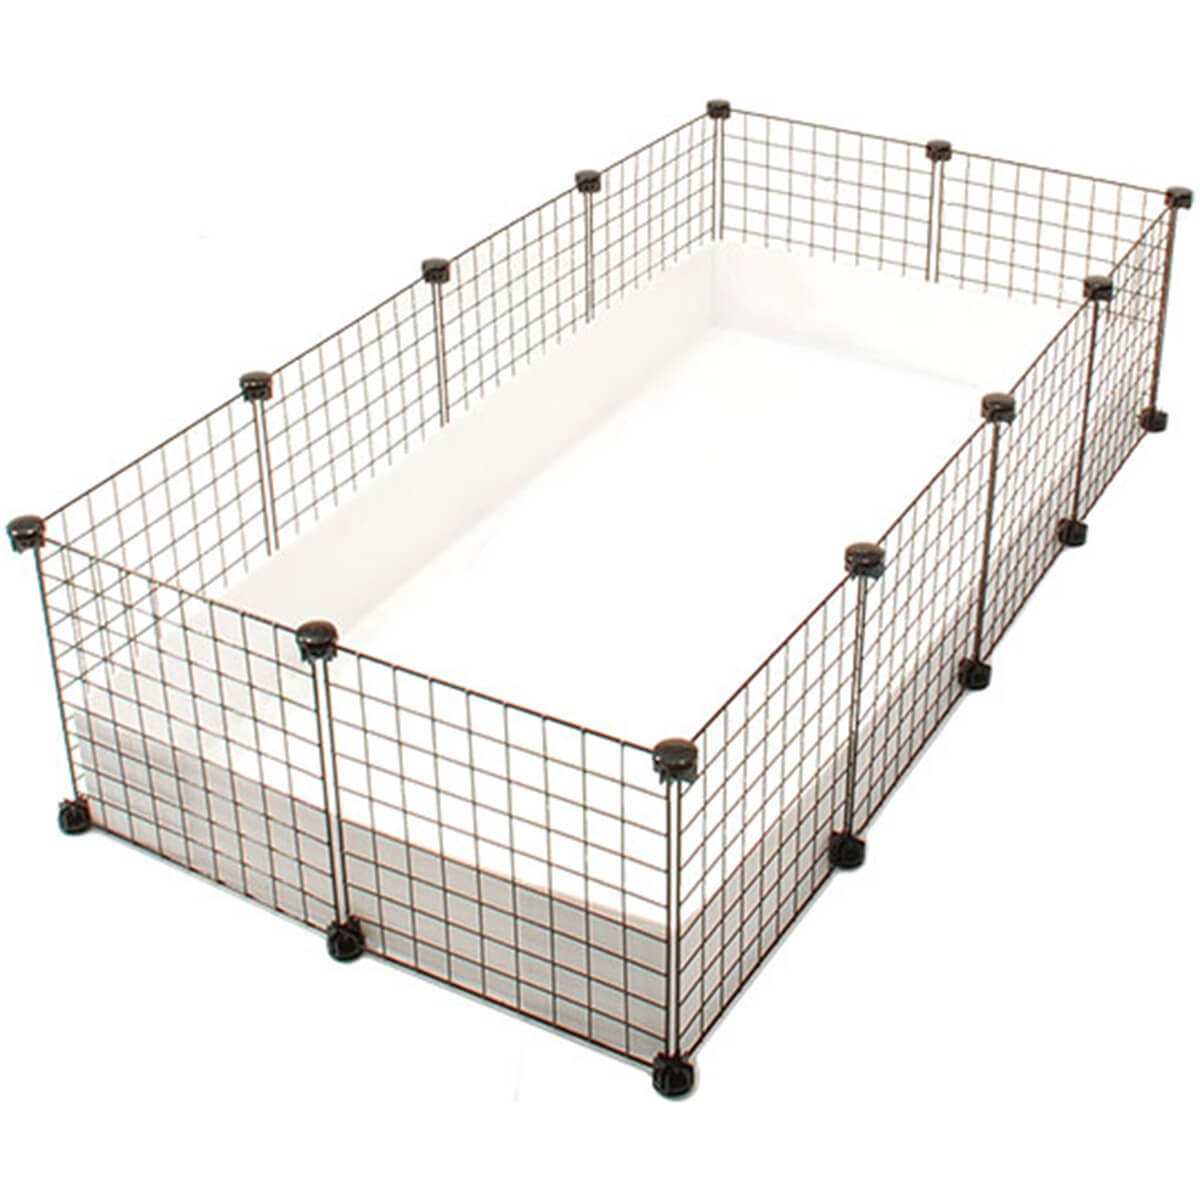 large 2x4 grids cage   clearance   cages   c amp c cages for guinea pigs